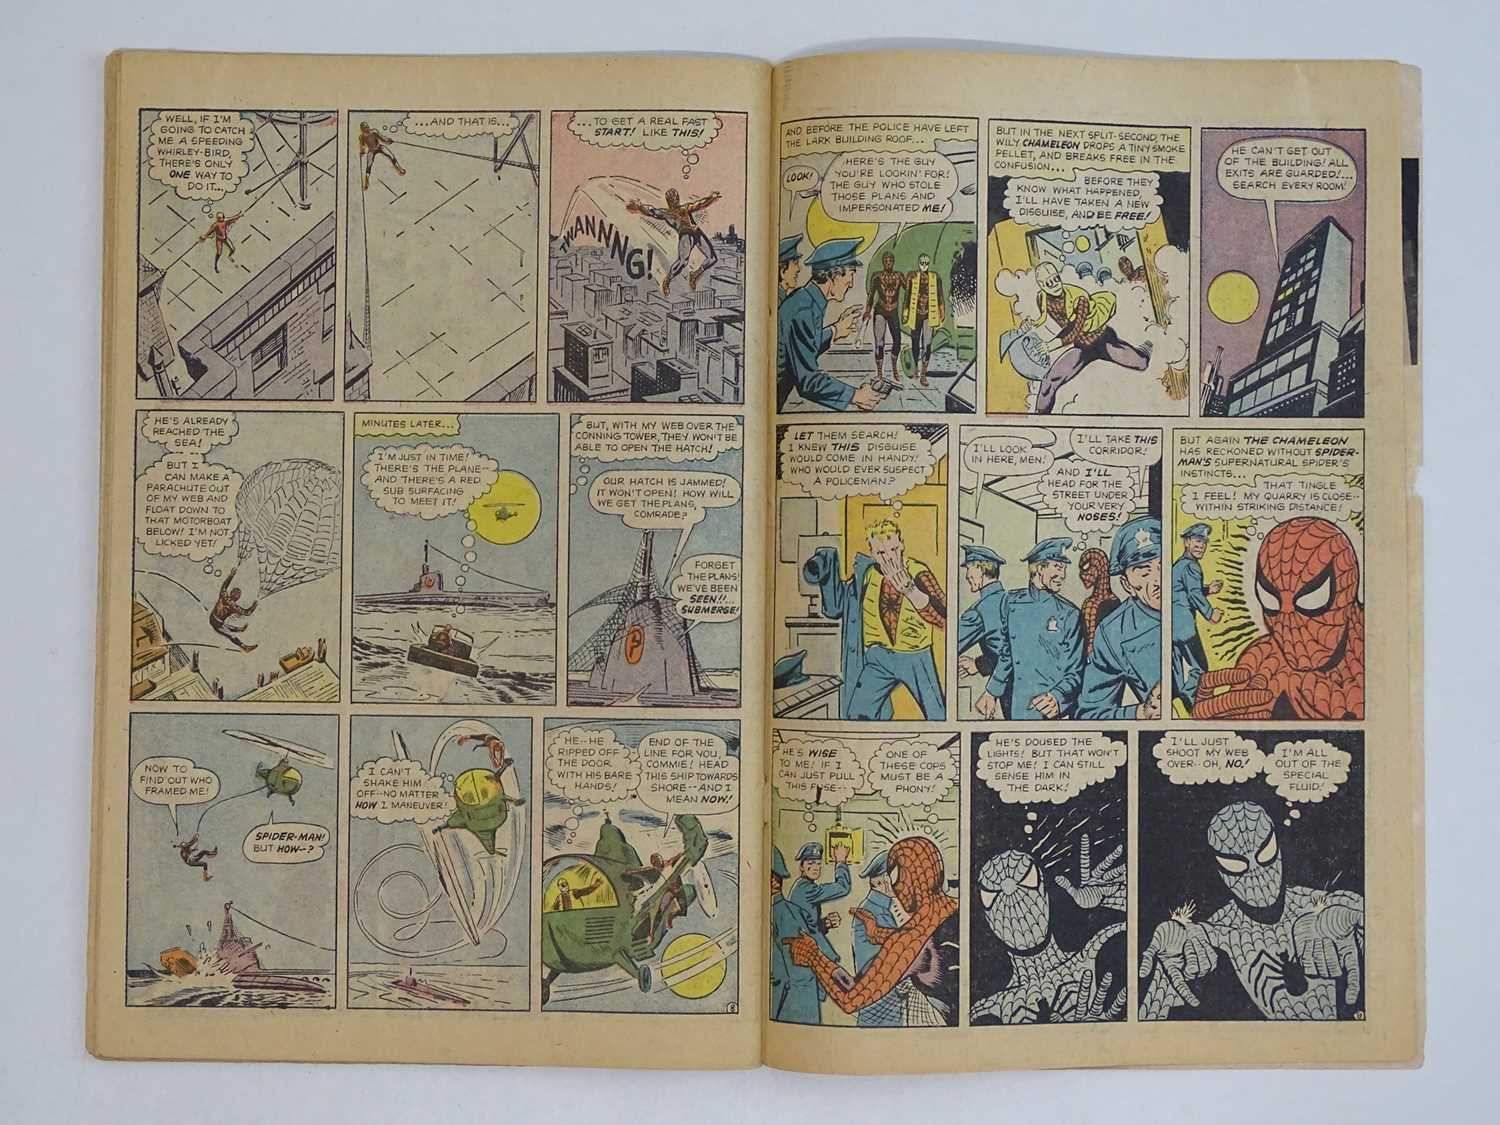 AMAZING SPIDER-MAN #1 - (1963 - MARVEL - UK Price Variant) - First appearance of Spider-Man un his - Image 25 of 27